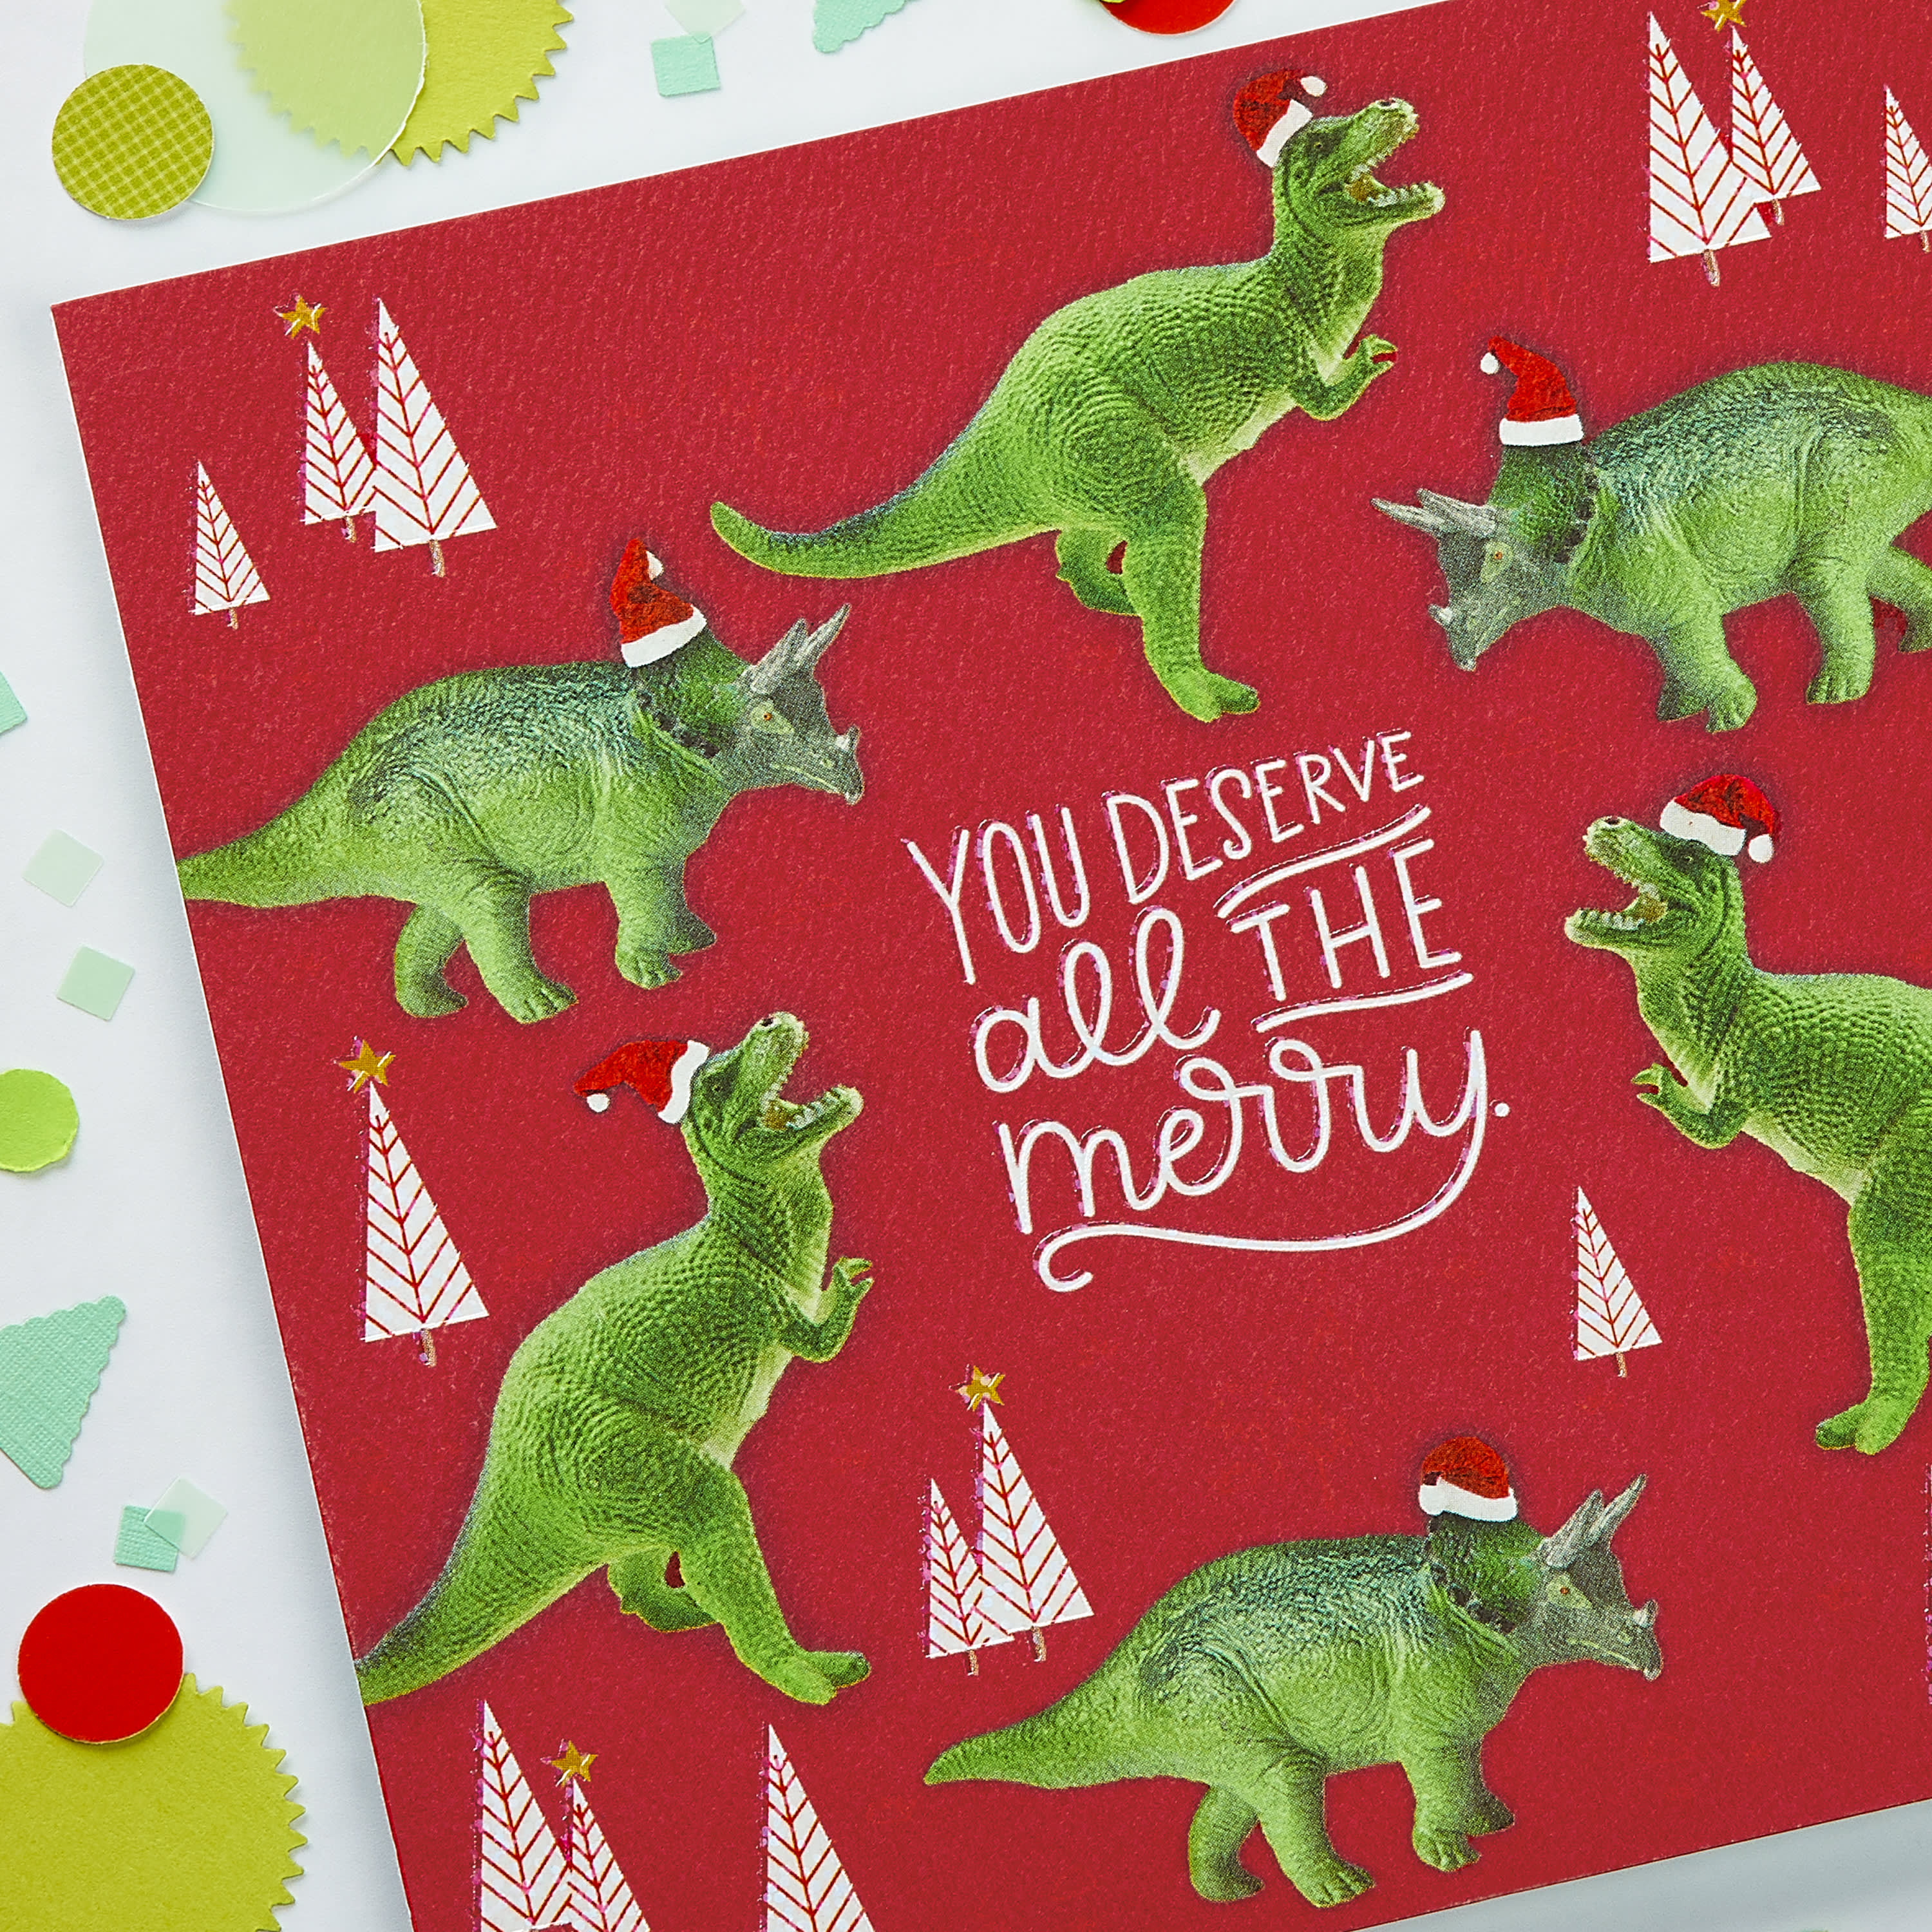 Dinosaur Money and Gift Card Holder Greeting Card - Christmas, Happy Holidays image